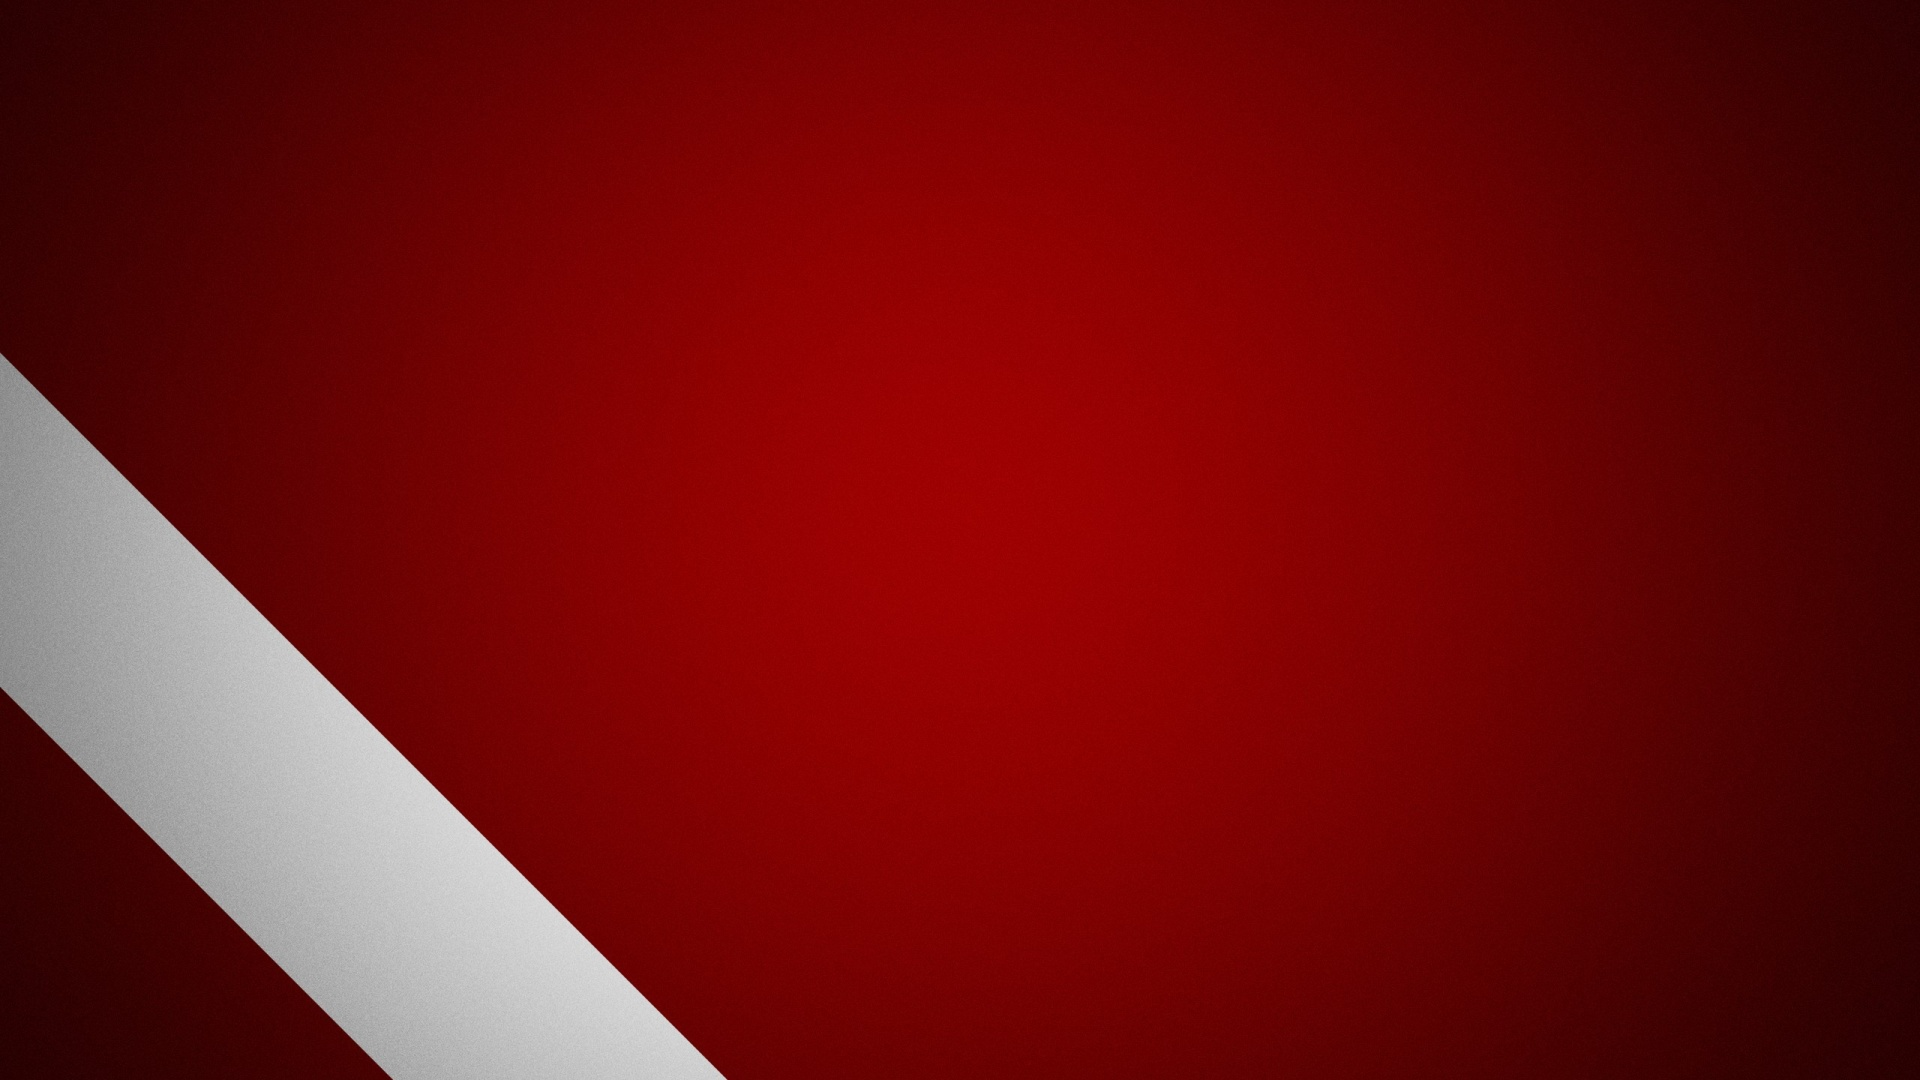 1920x1080 Wallpaper Red